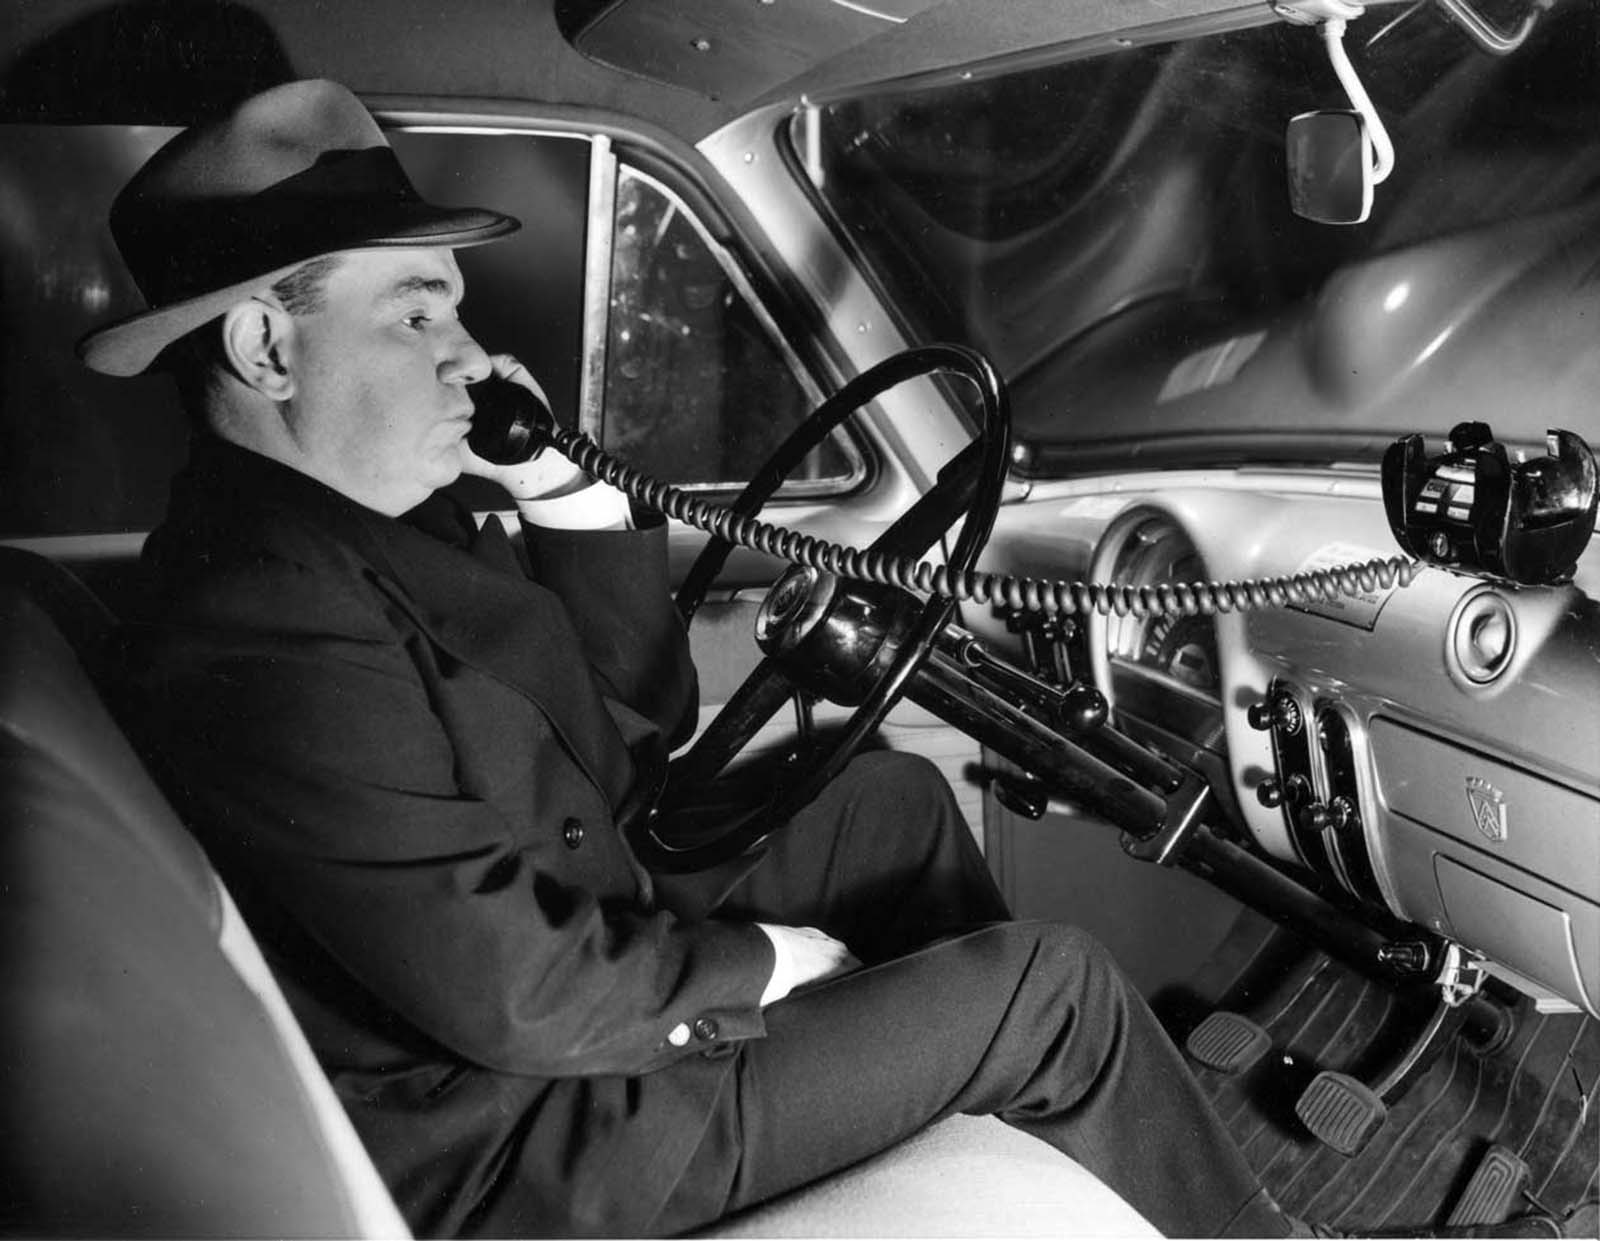 A man using a mobile telephone in an automobile. 1954.